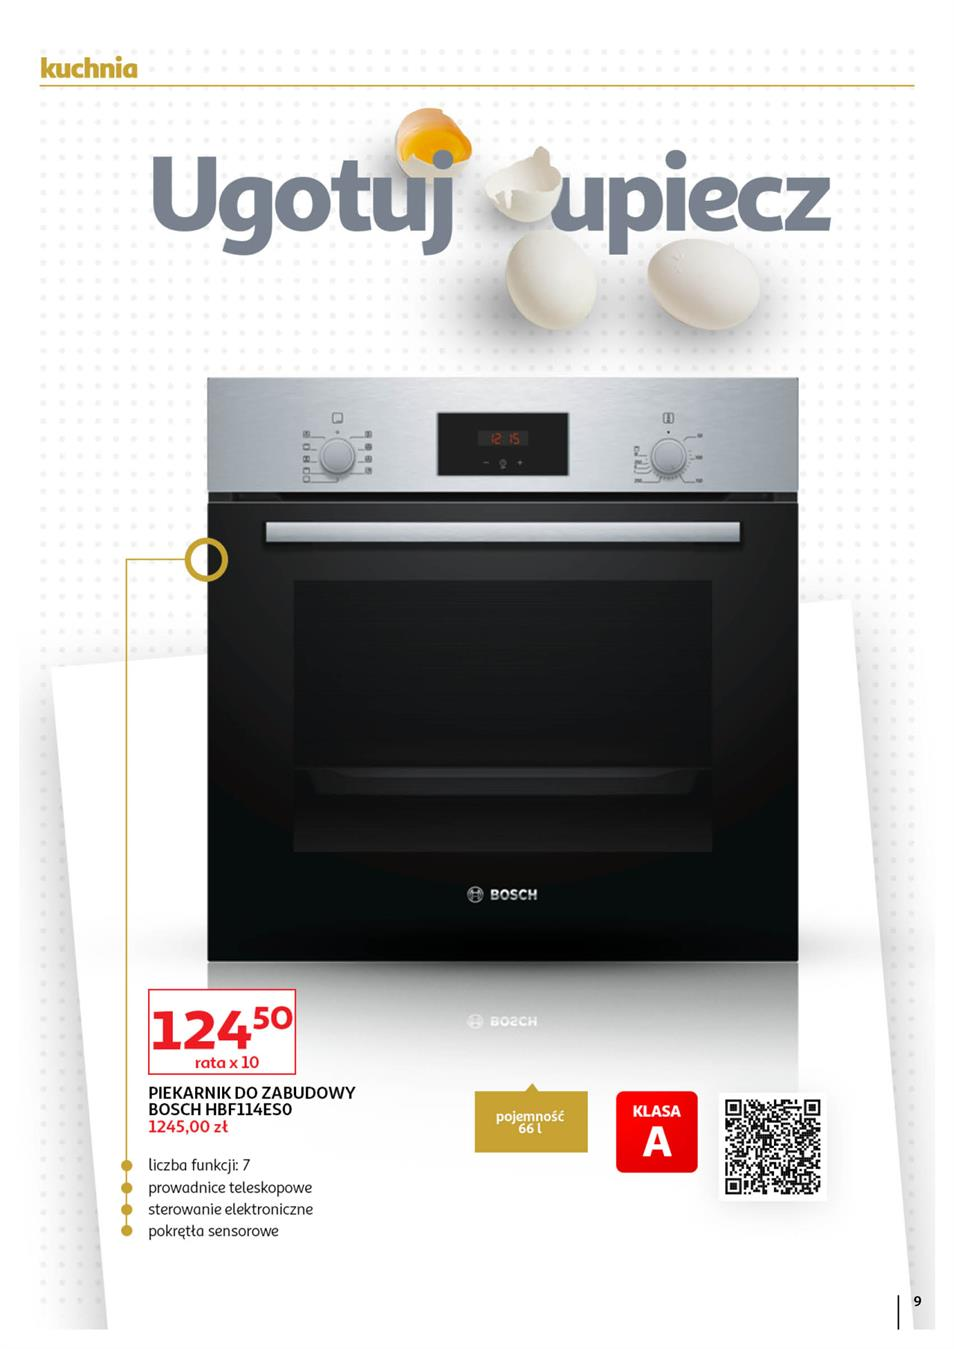 Gazetka Auchan Polska Sp. z o.o. nr 9 od 2019-09-05 do 2019-10-02